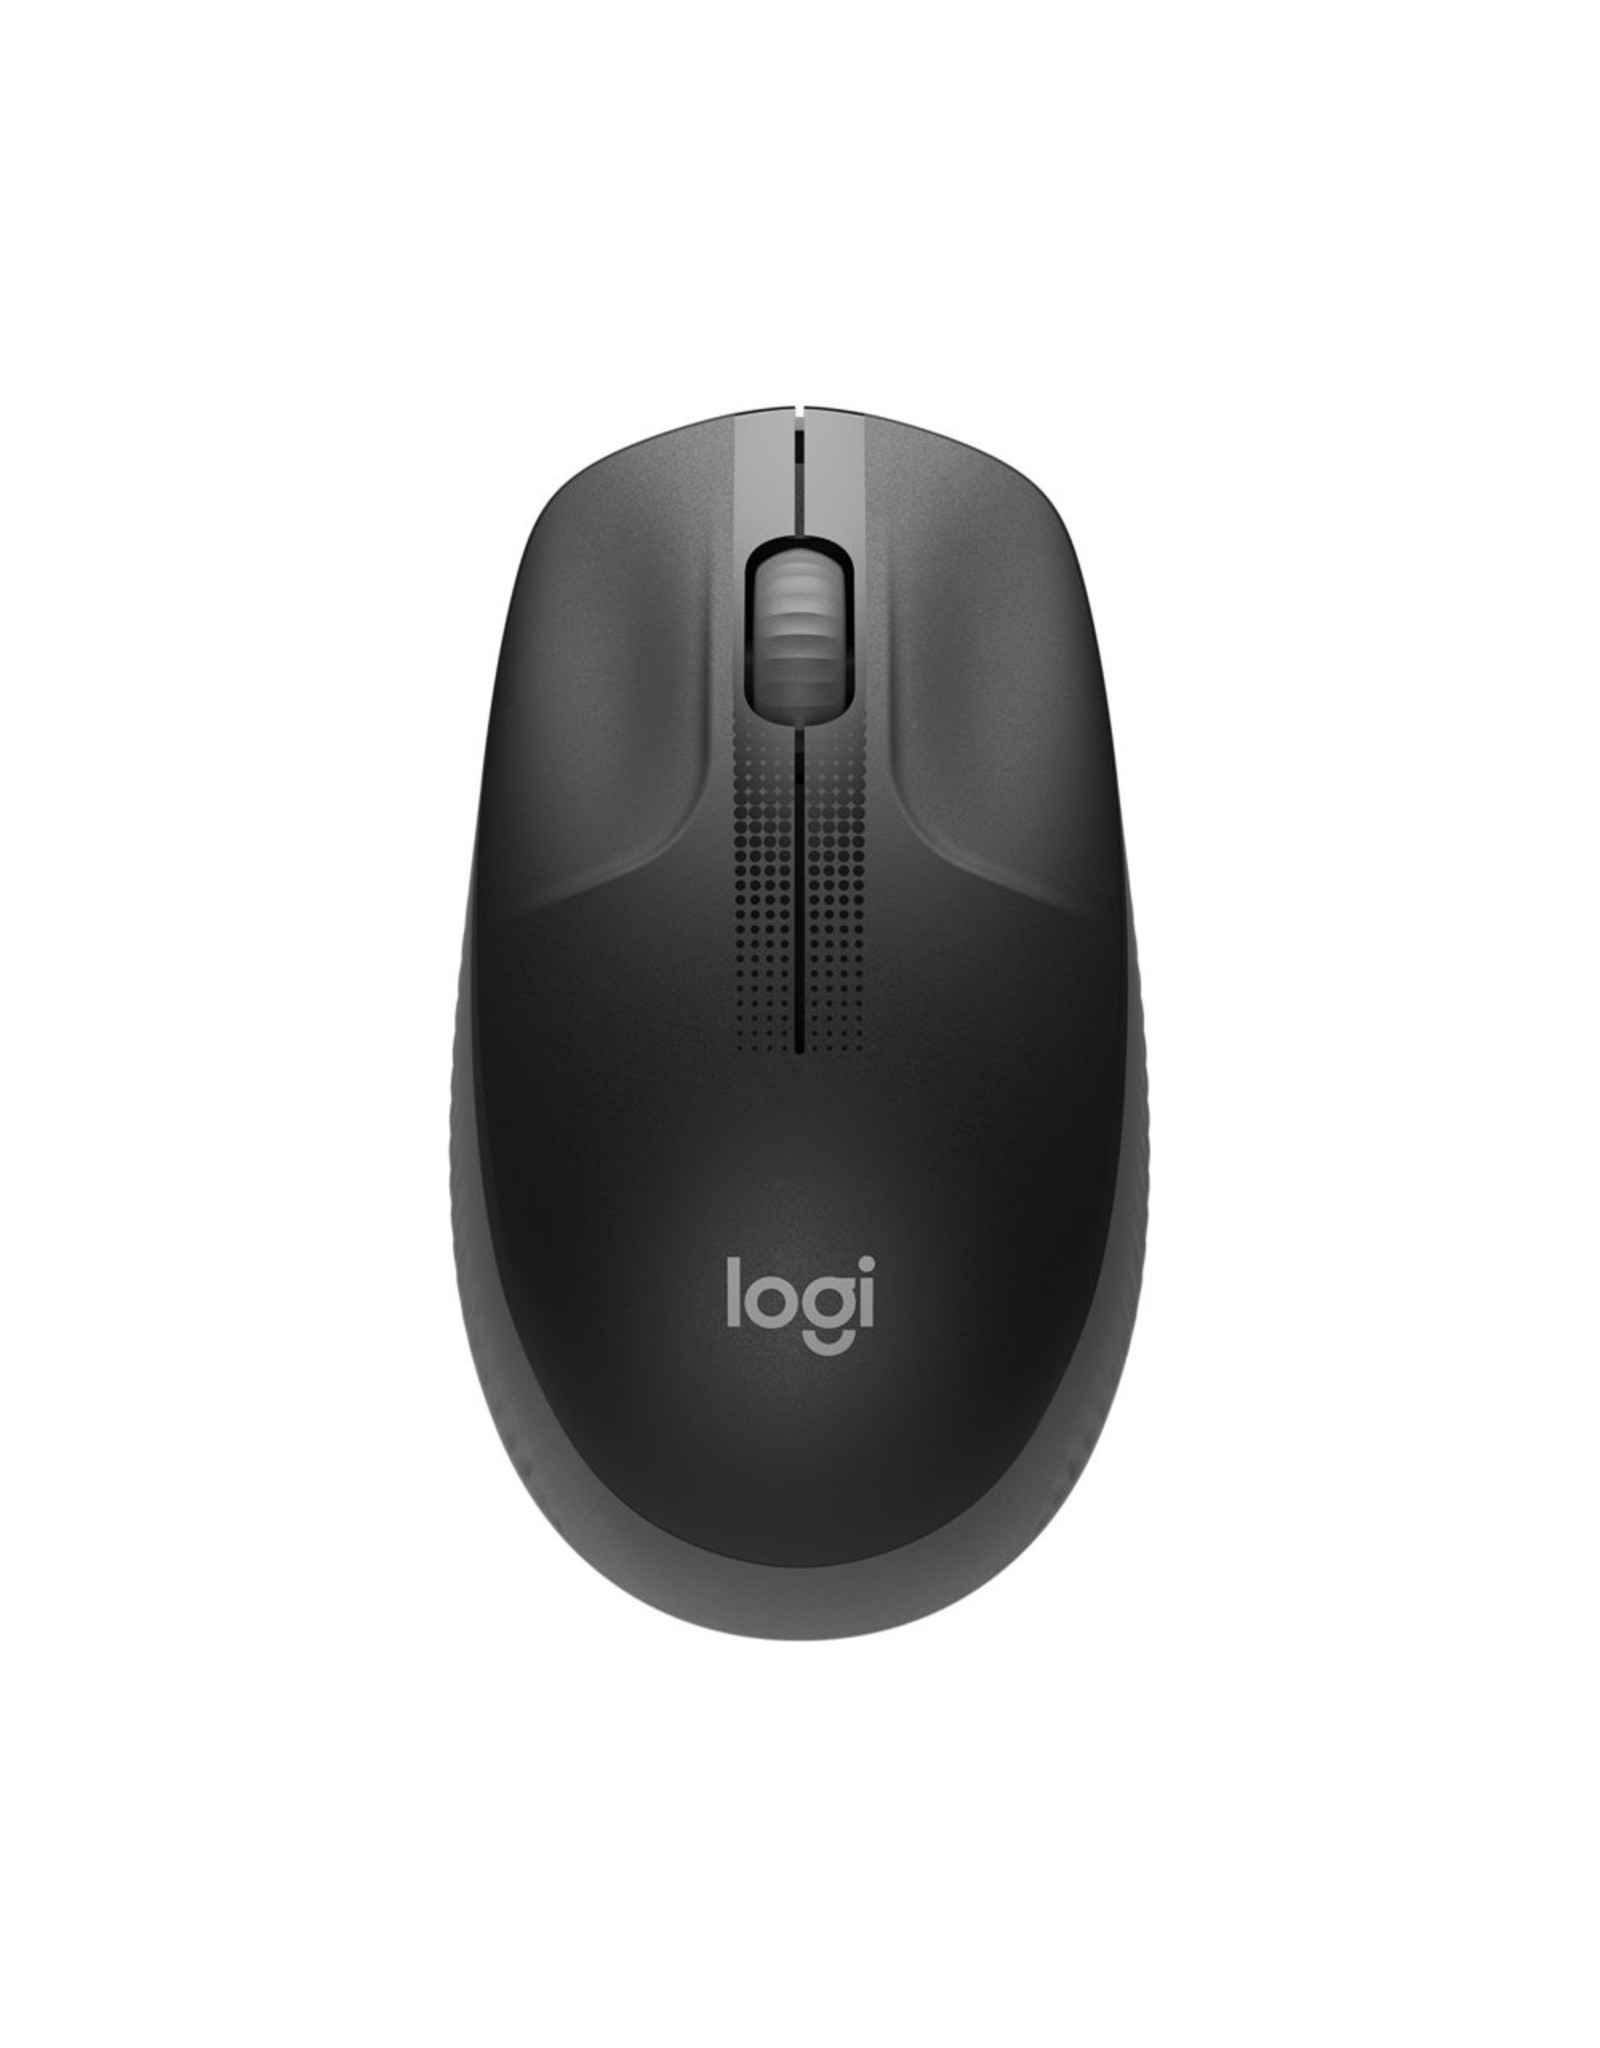 Logitech M190 wireless mouse Black